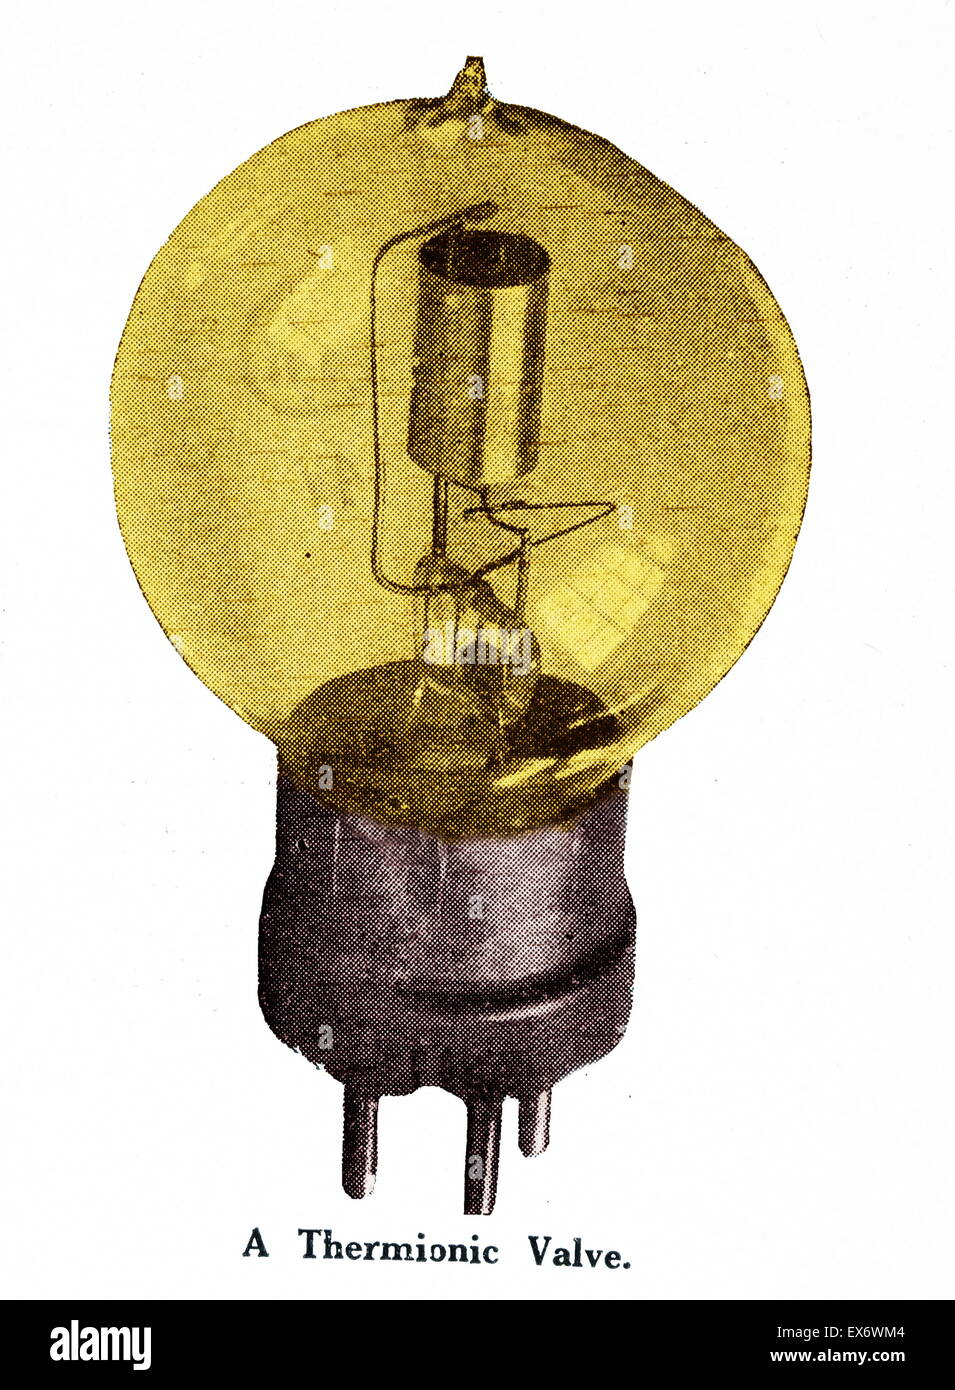 thermionic tube or thermionic valve Invented in about 1910, were a basic component for electronics throughout the - Stock Image